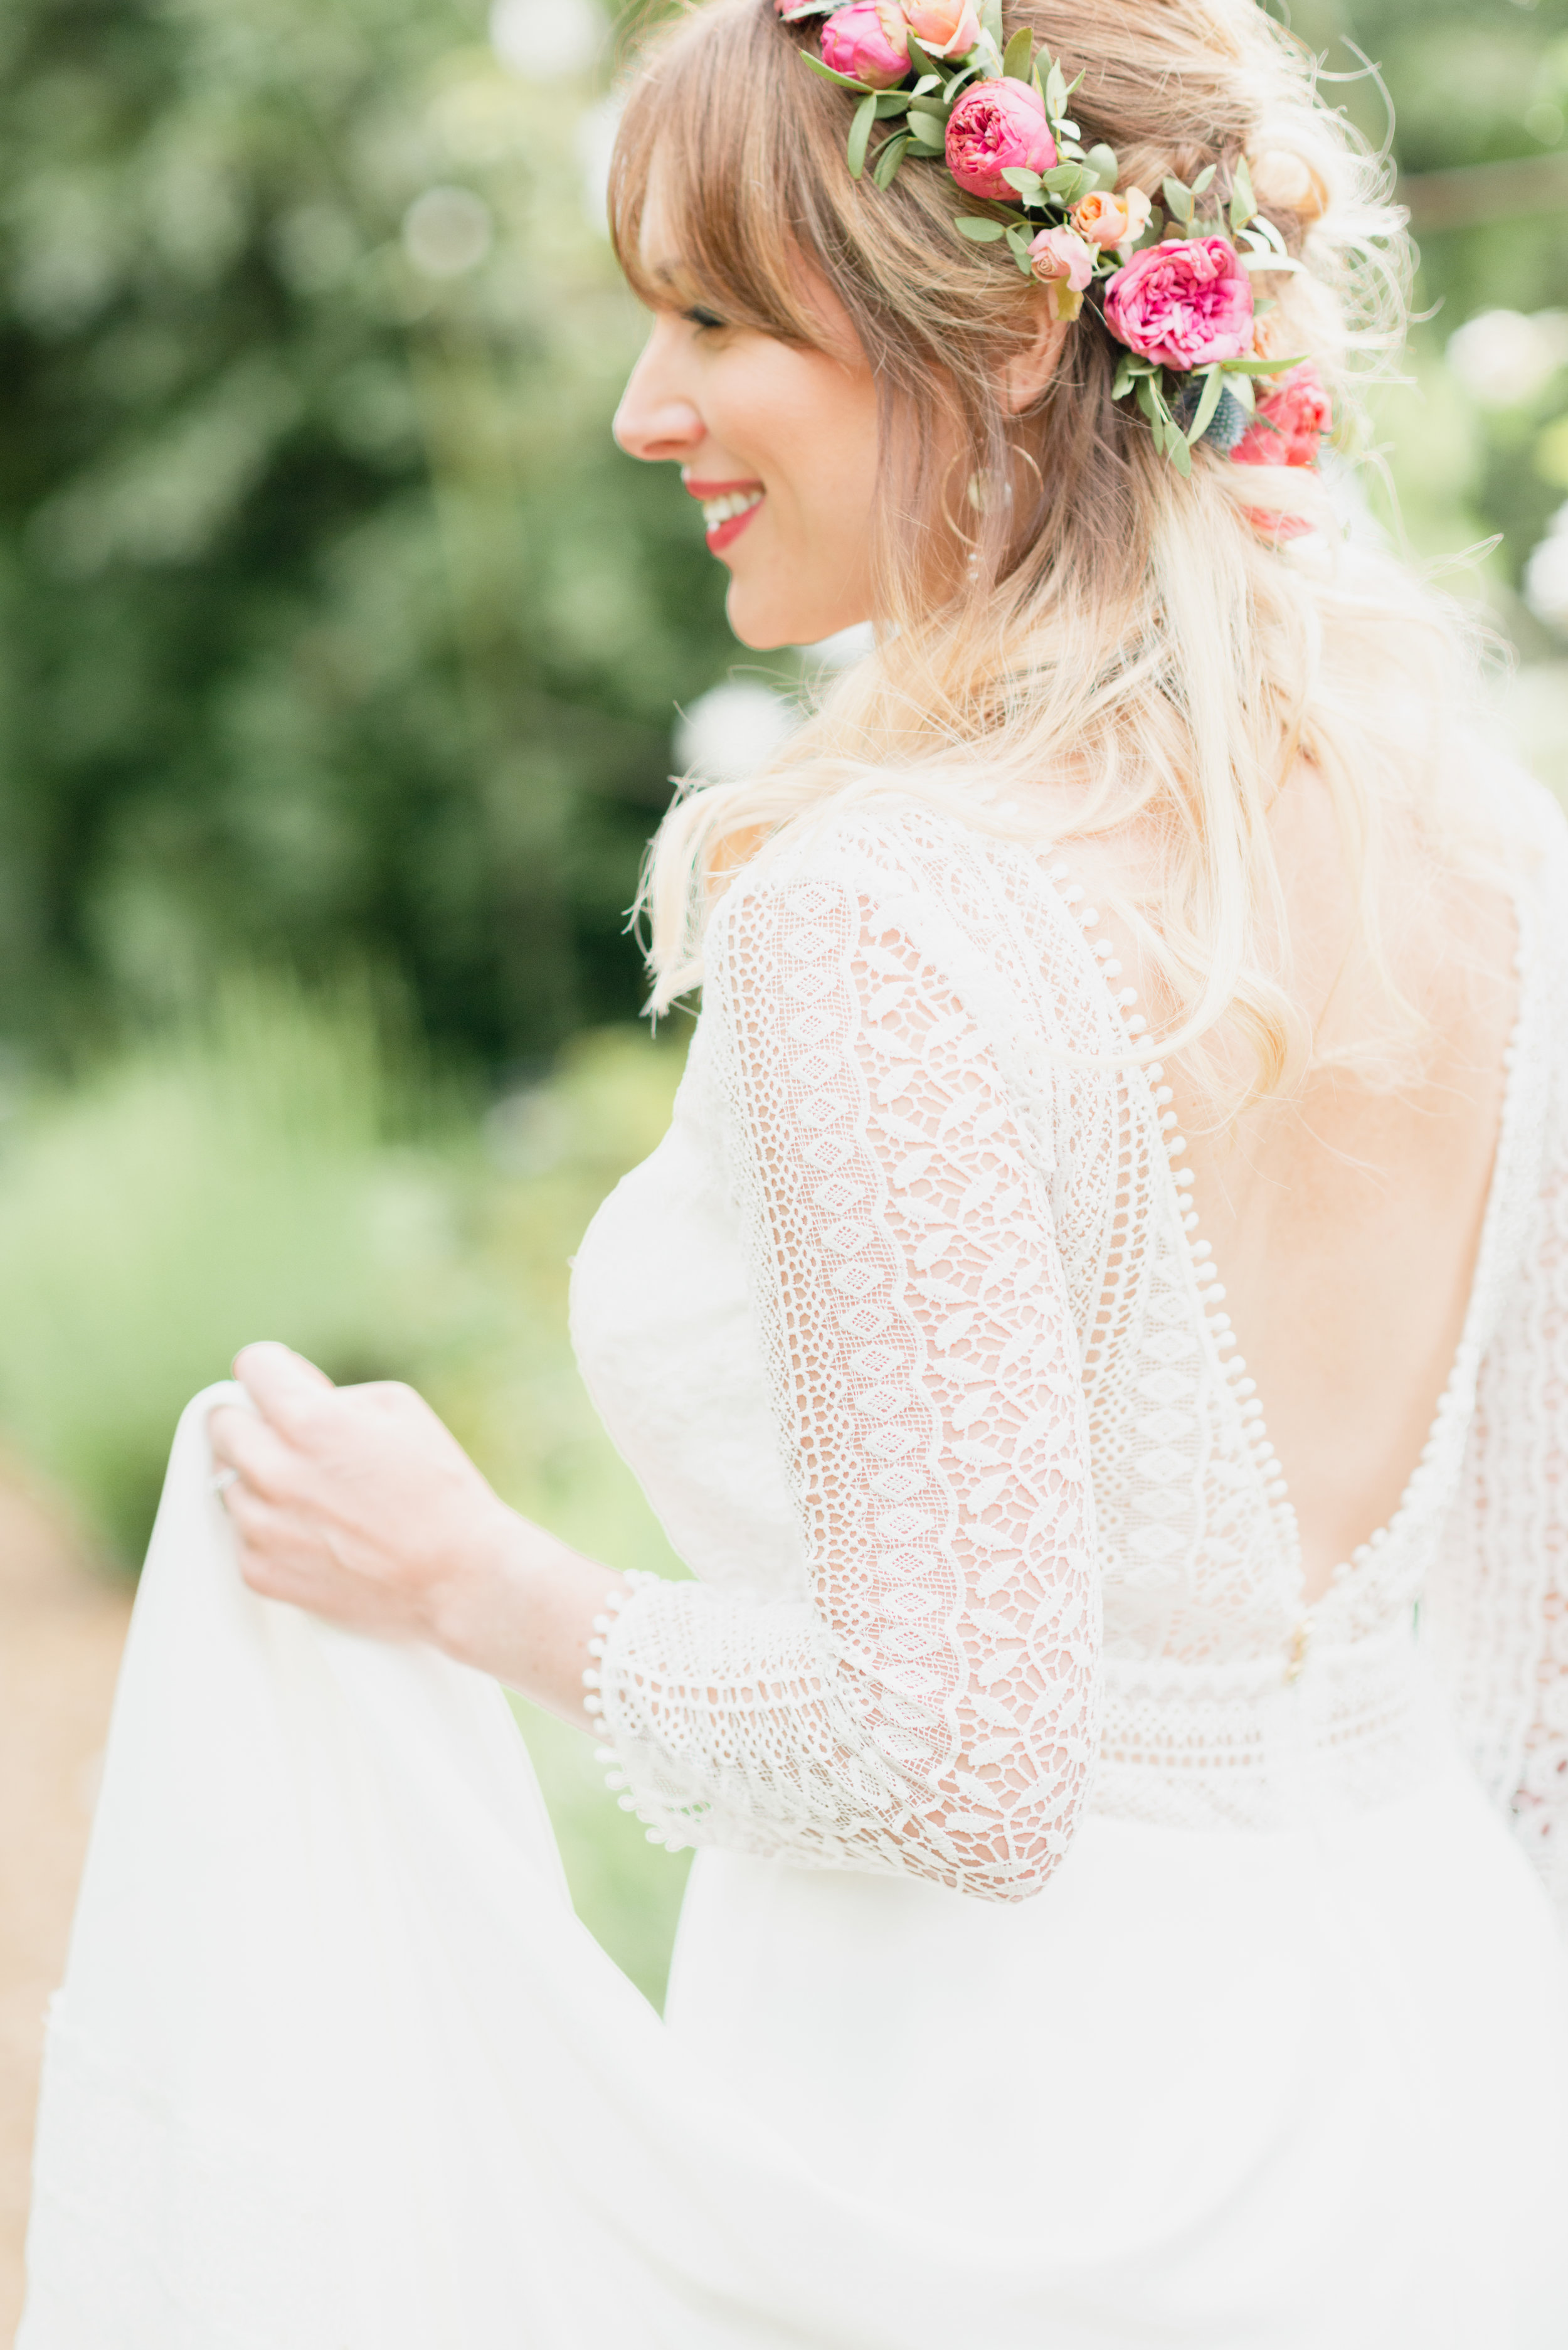 S+A_William Cecil Wedding_Boho Wedding_Fine Art Wedding_Rebekah Robert Photography-885.jpg